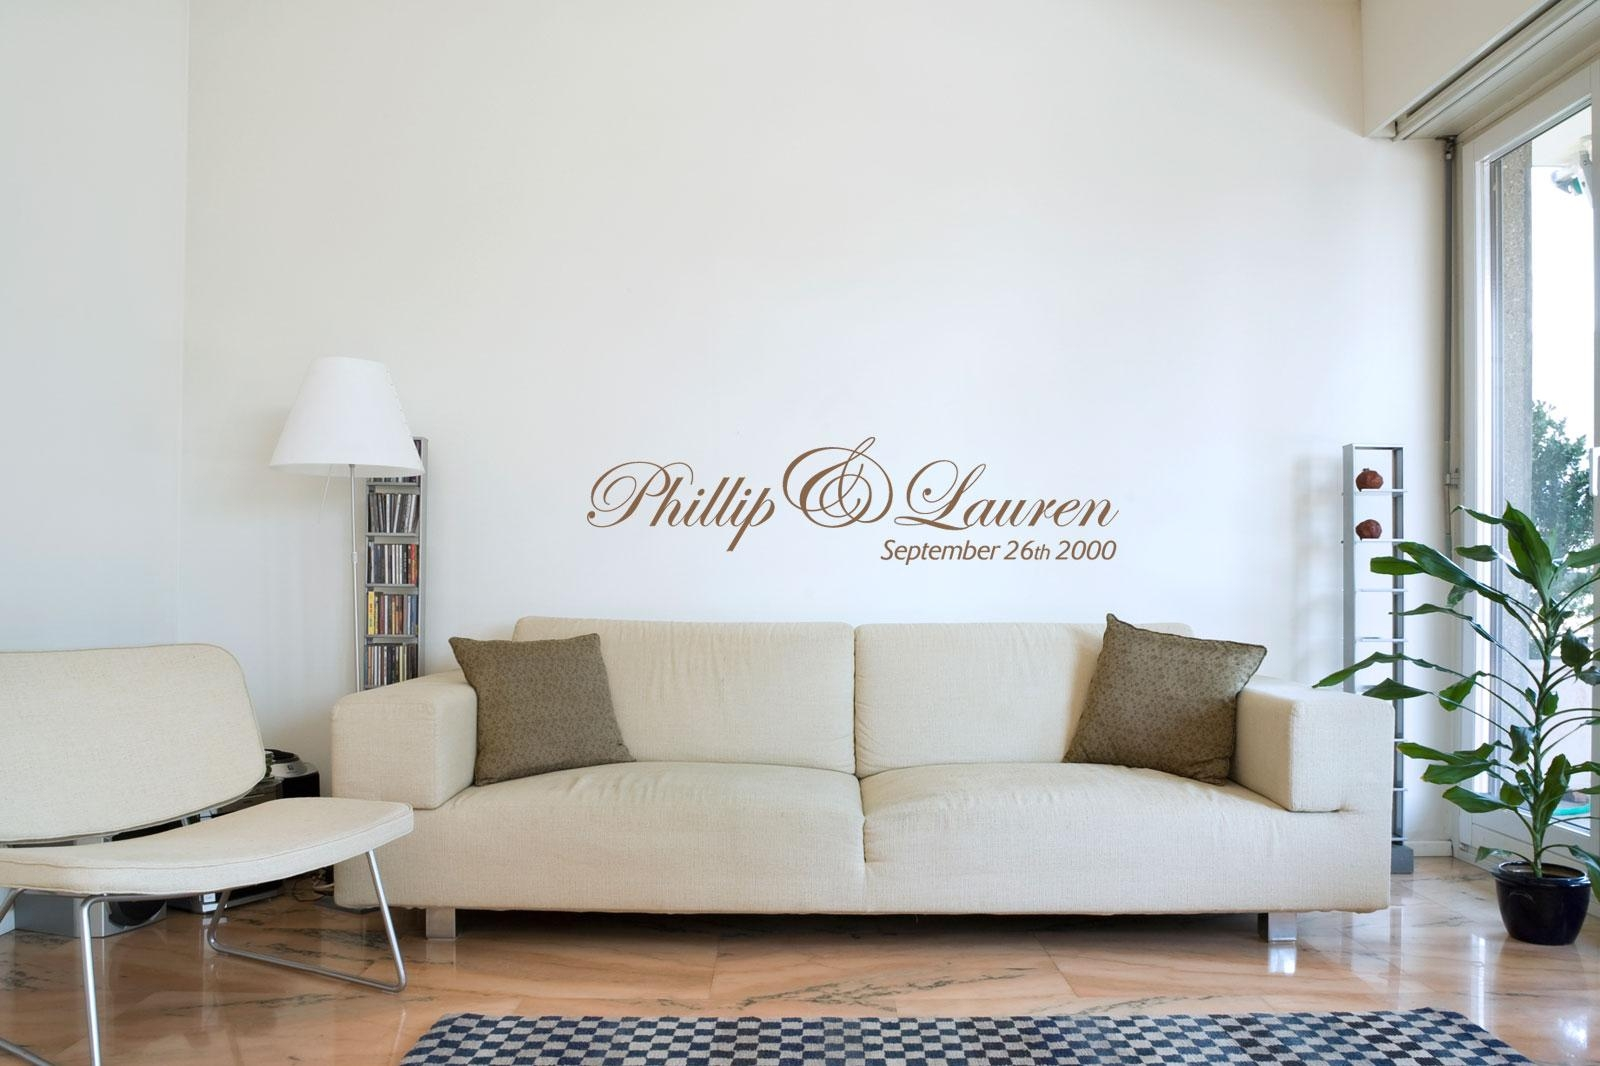 Wall Decals For Living Room Living Room Paint Diy Living Room Wall For Wall Pictures For Living Room (Image 19 of 20)